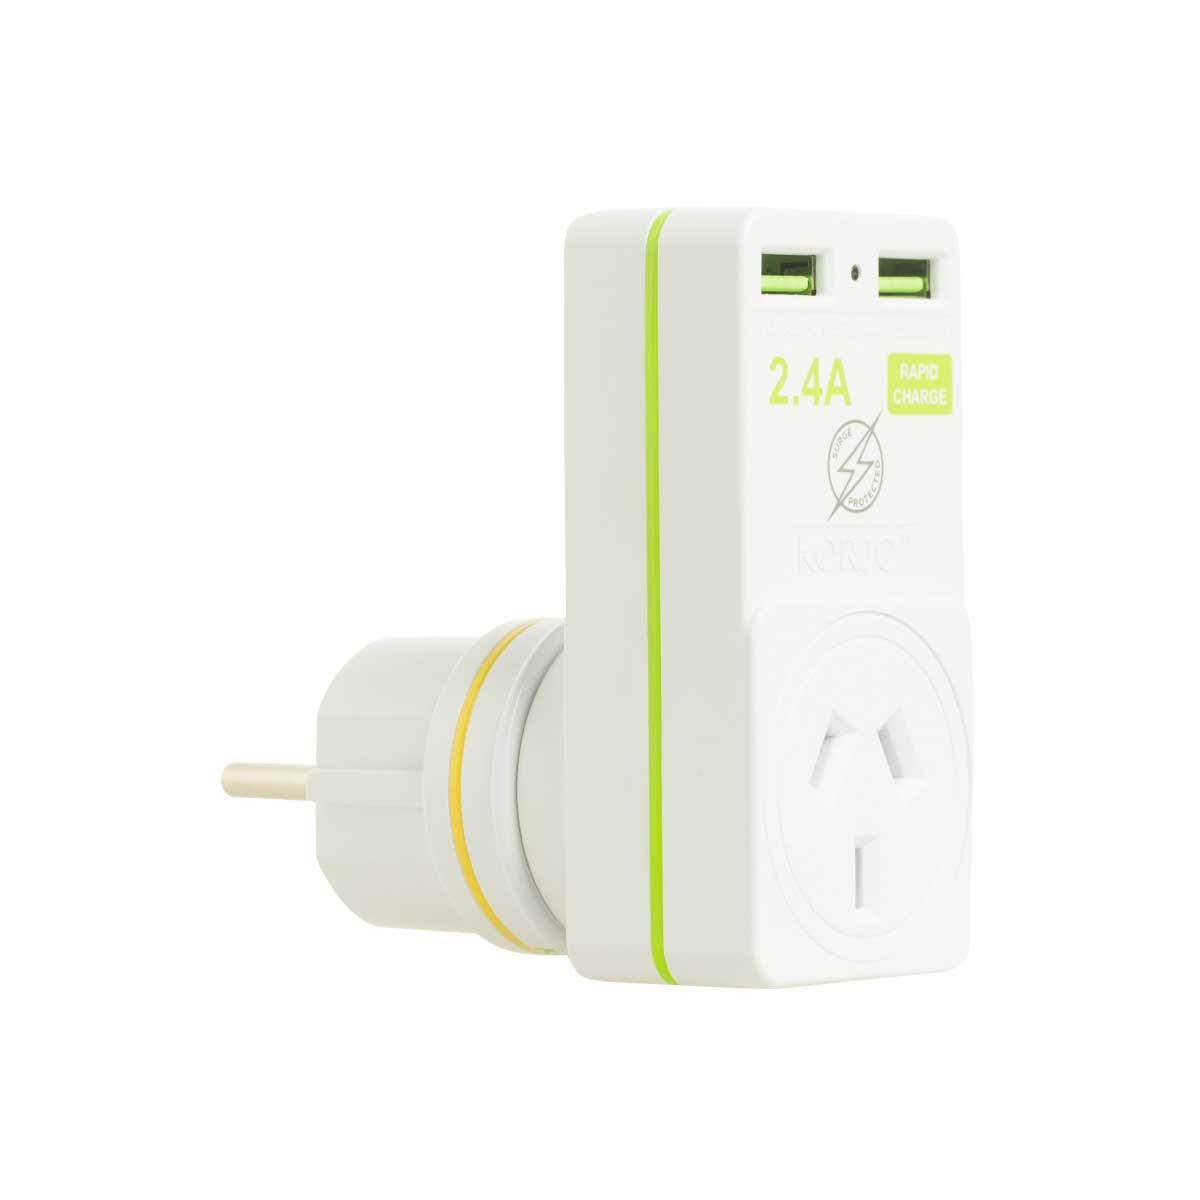 Korjo 2 port USB charger and adaptor Australia and NZ to Europe